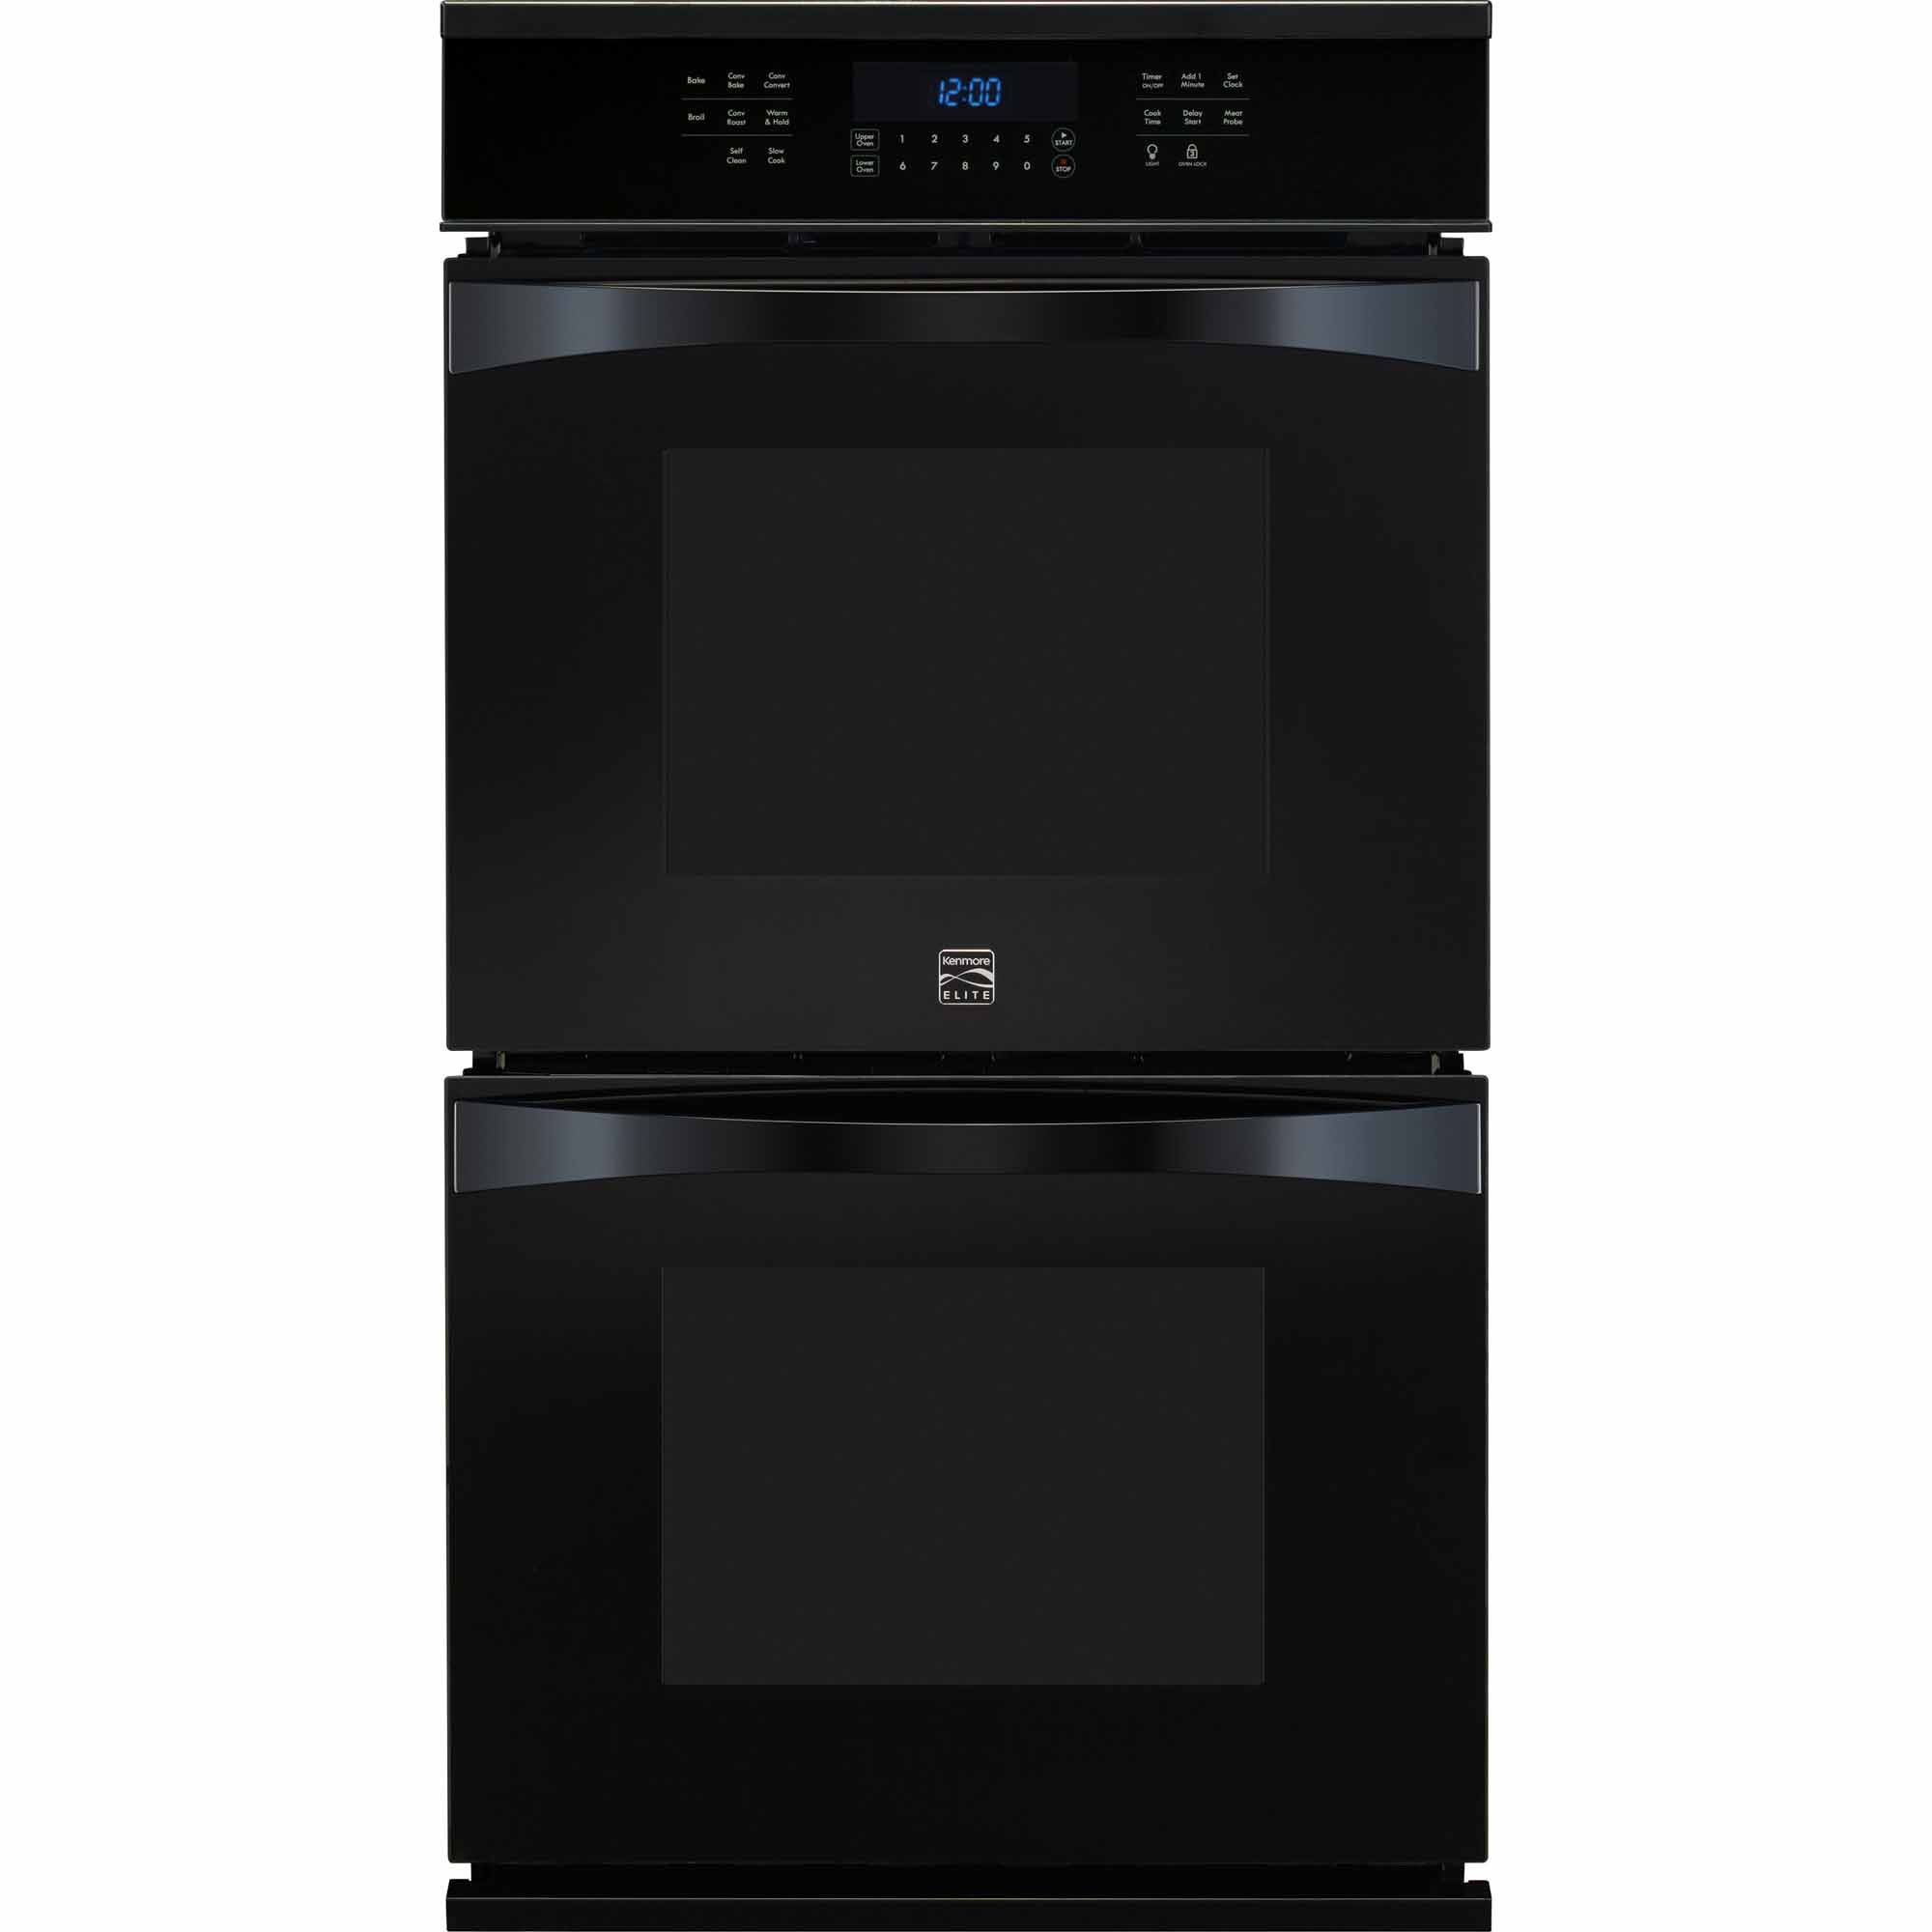 48449-27-Electric-Double-Wall-Oven-w-True-Convection%E2%84%A2-Black